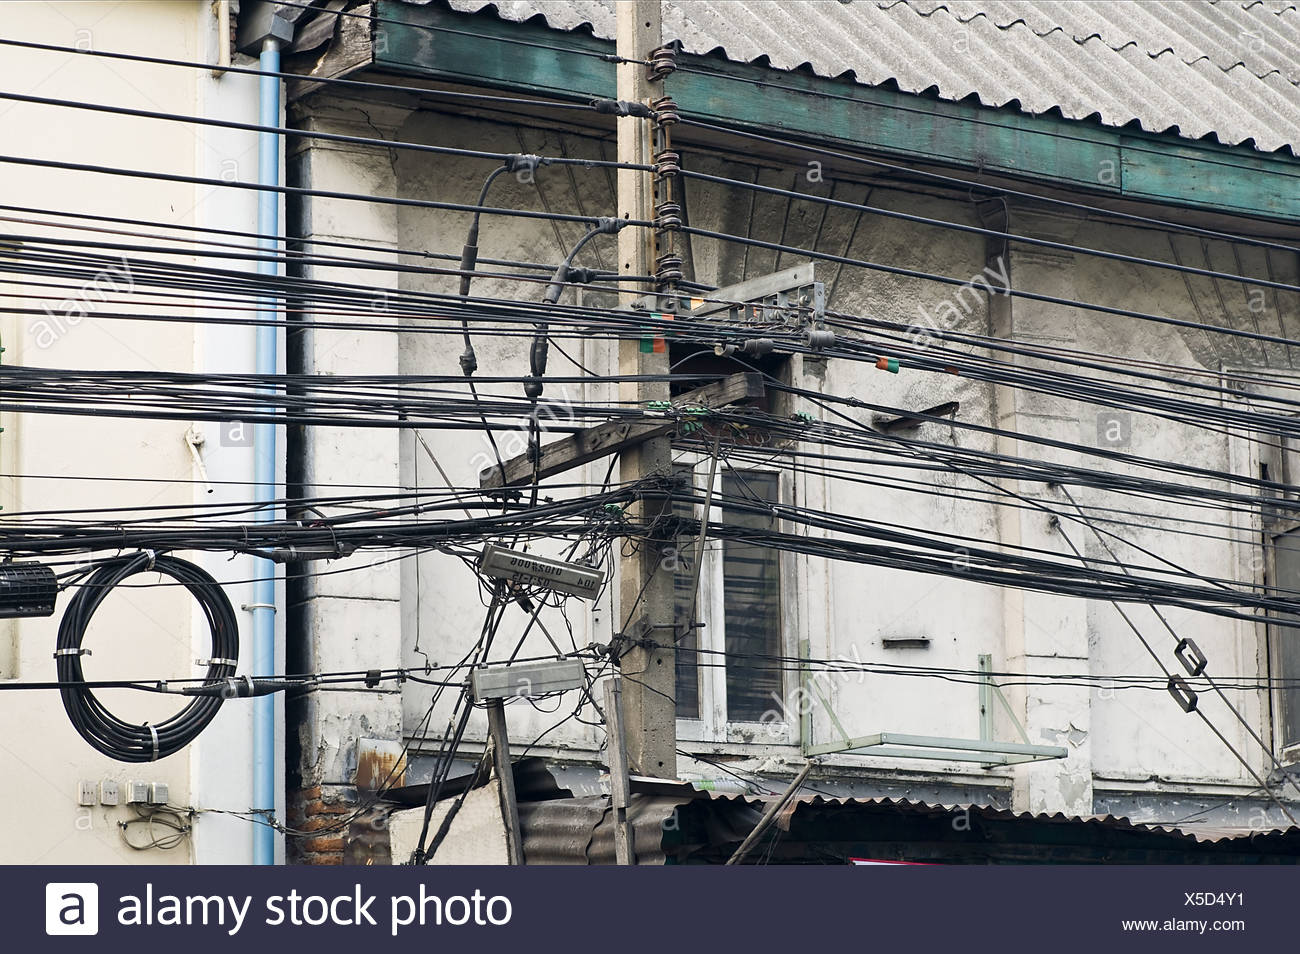 Urban Electrical Wire Stock Photos & Urban Electrical Wire Stock ...